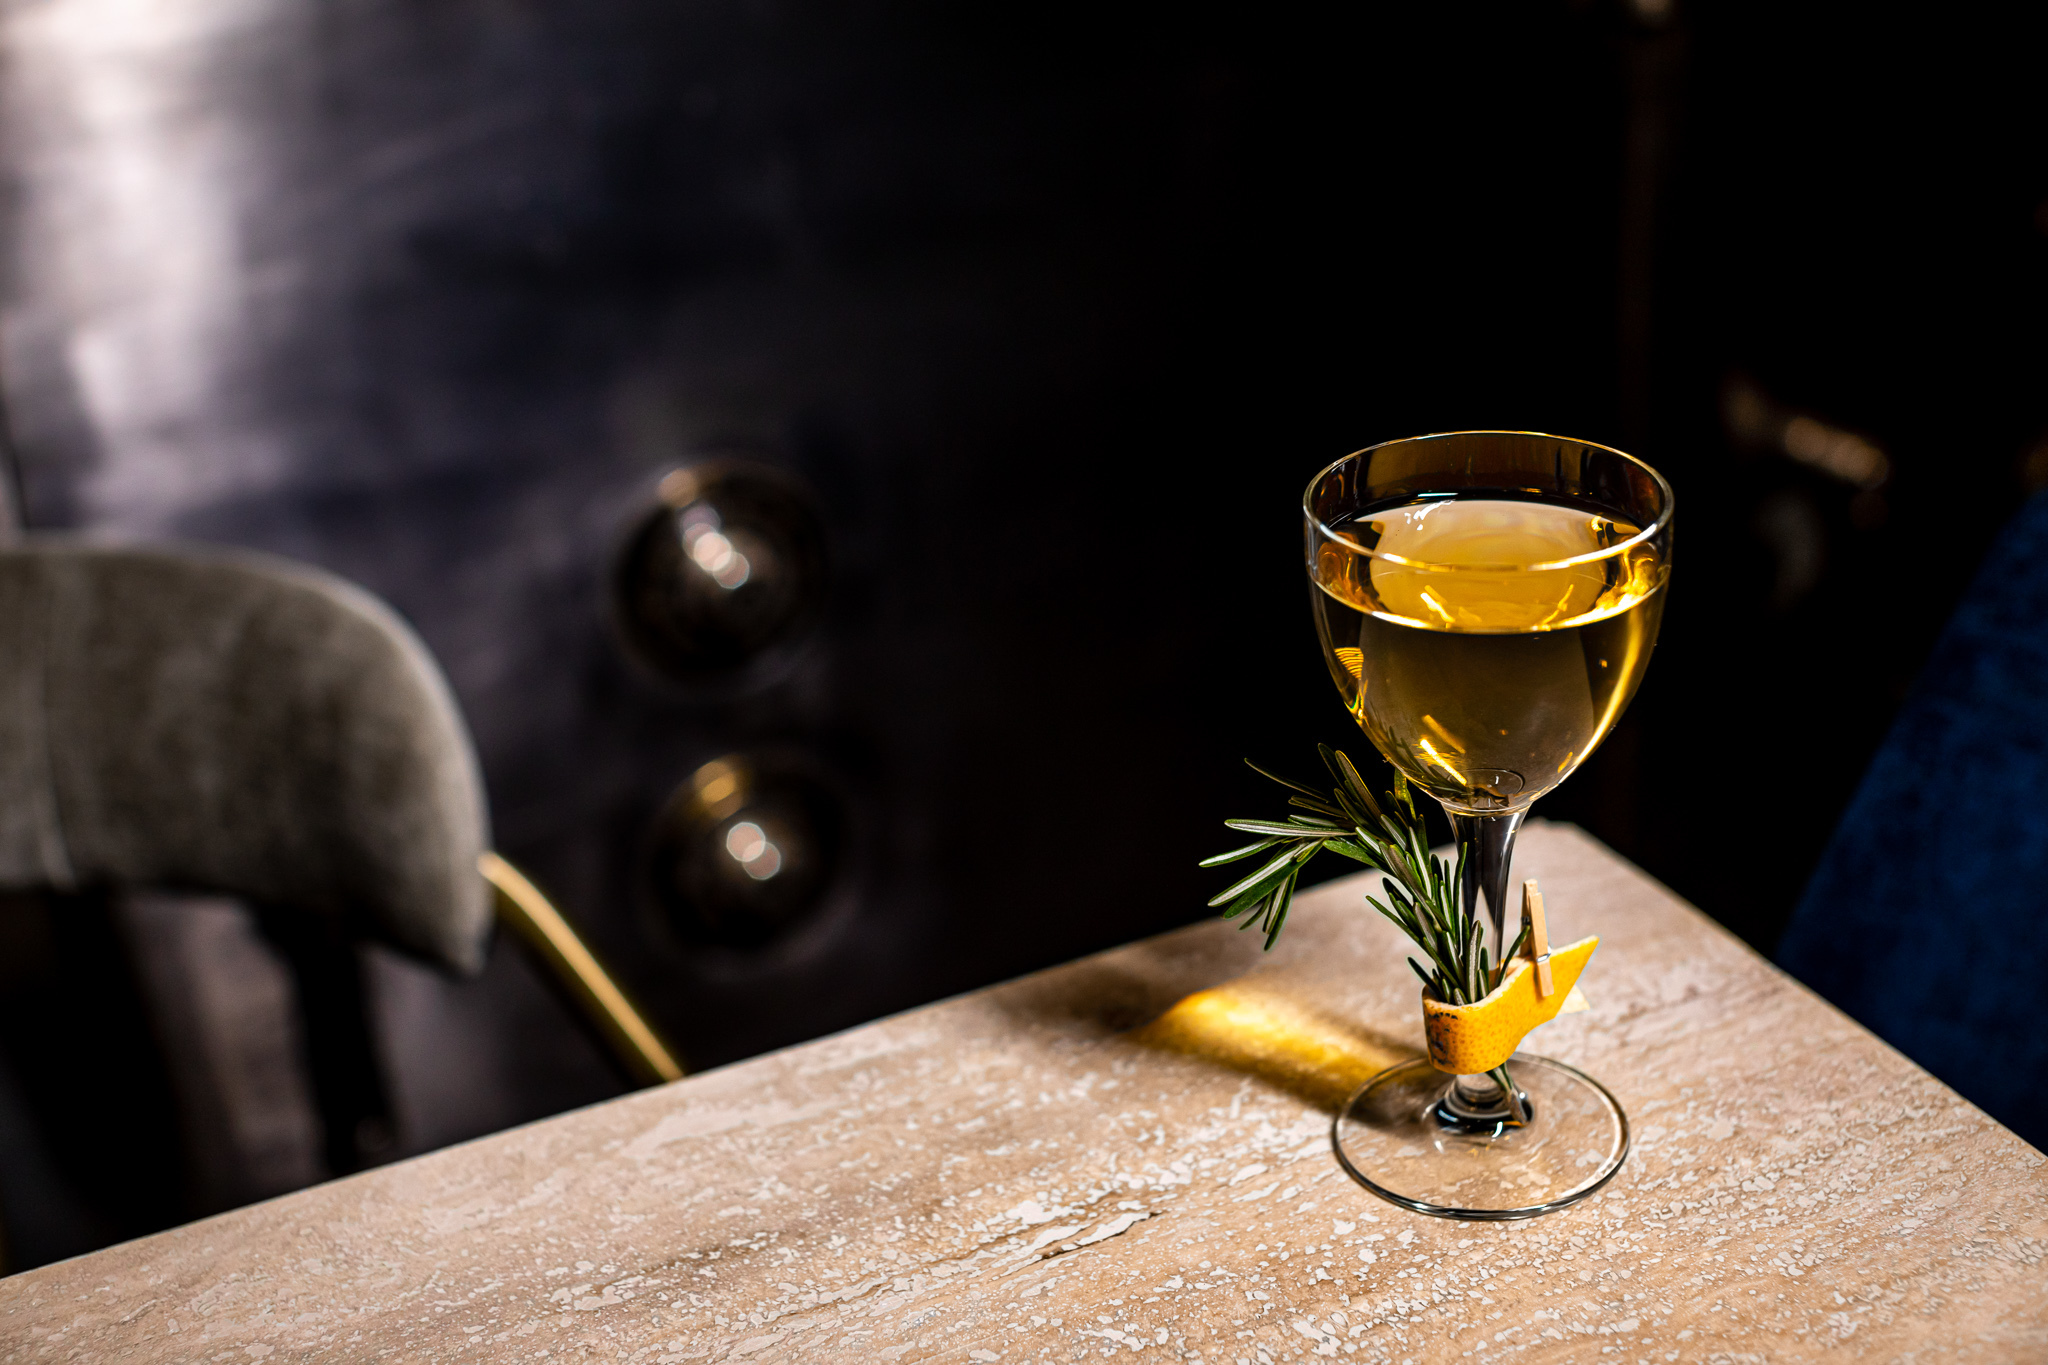 Mezcal and amontillado sherry cocktail Flashing Lights from the Shelby with a garnish of rosemary clip to the stem of the coup glass with a lemon peel